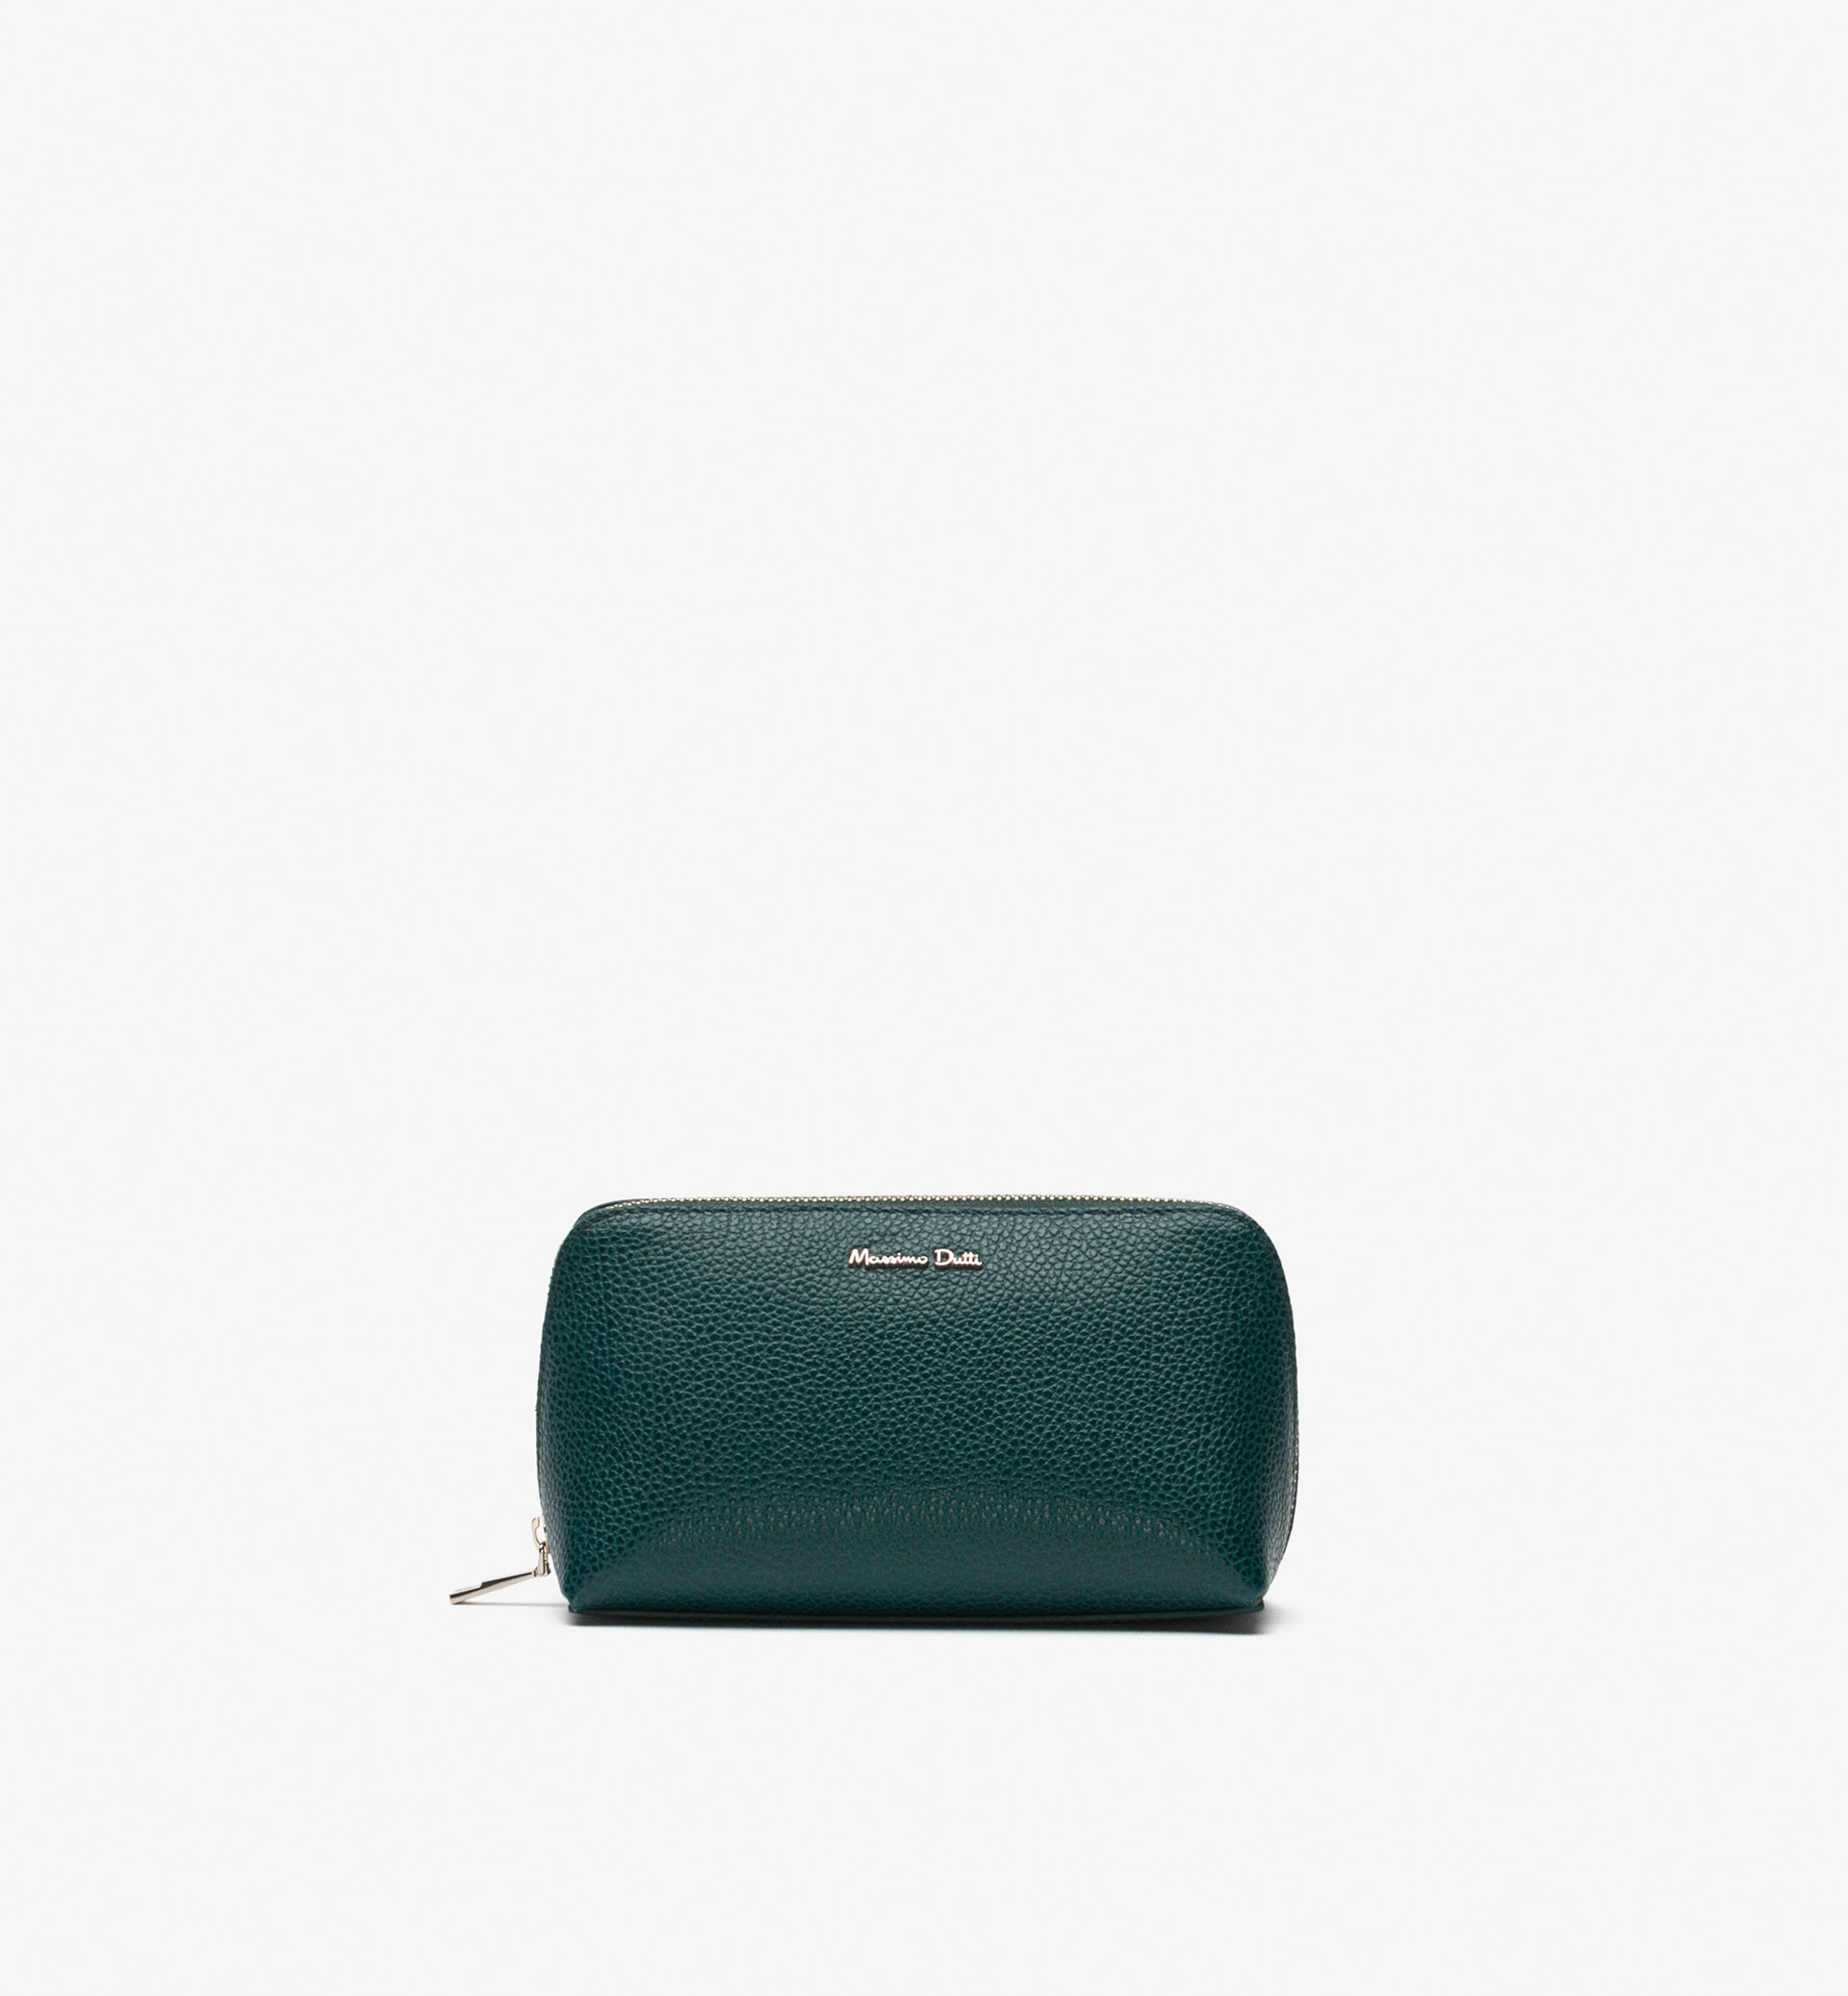 EMBOSSED LEATHER TOILETRY BAG